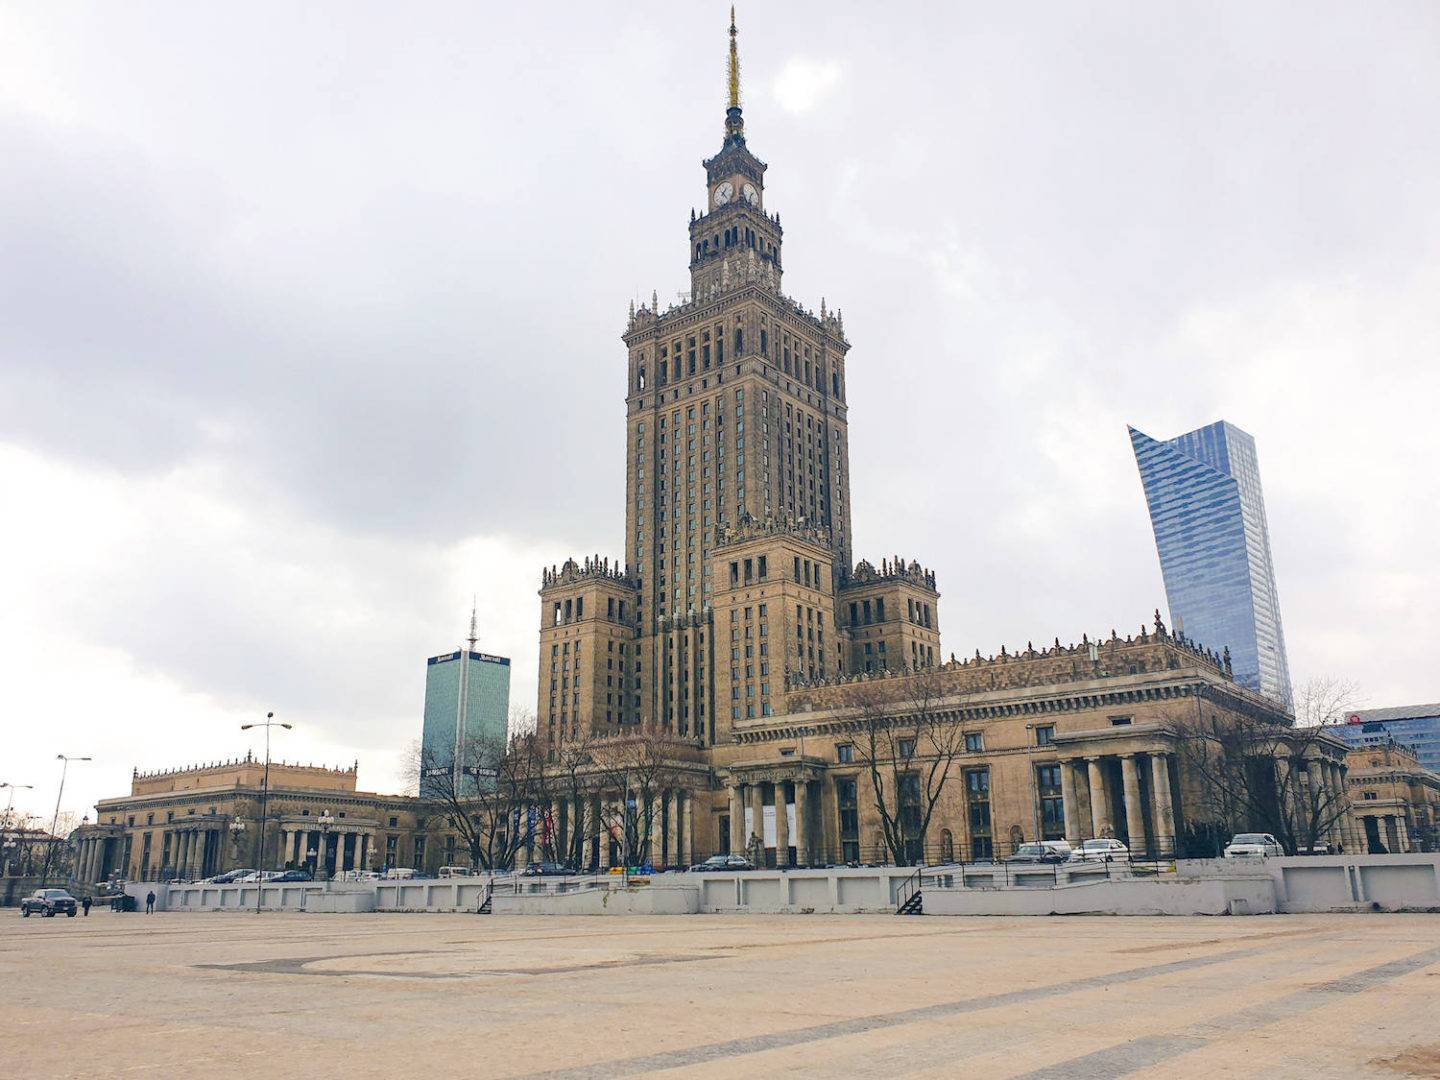 Top Warsaw attractions: Palace of Science and Culture